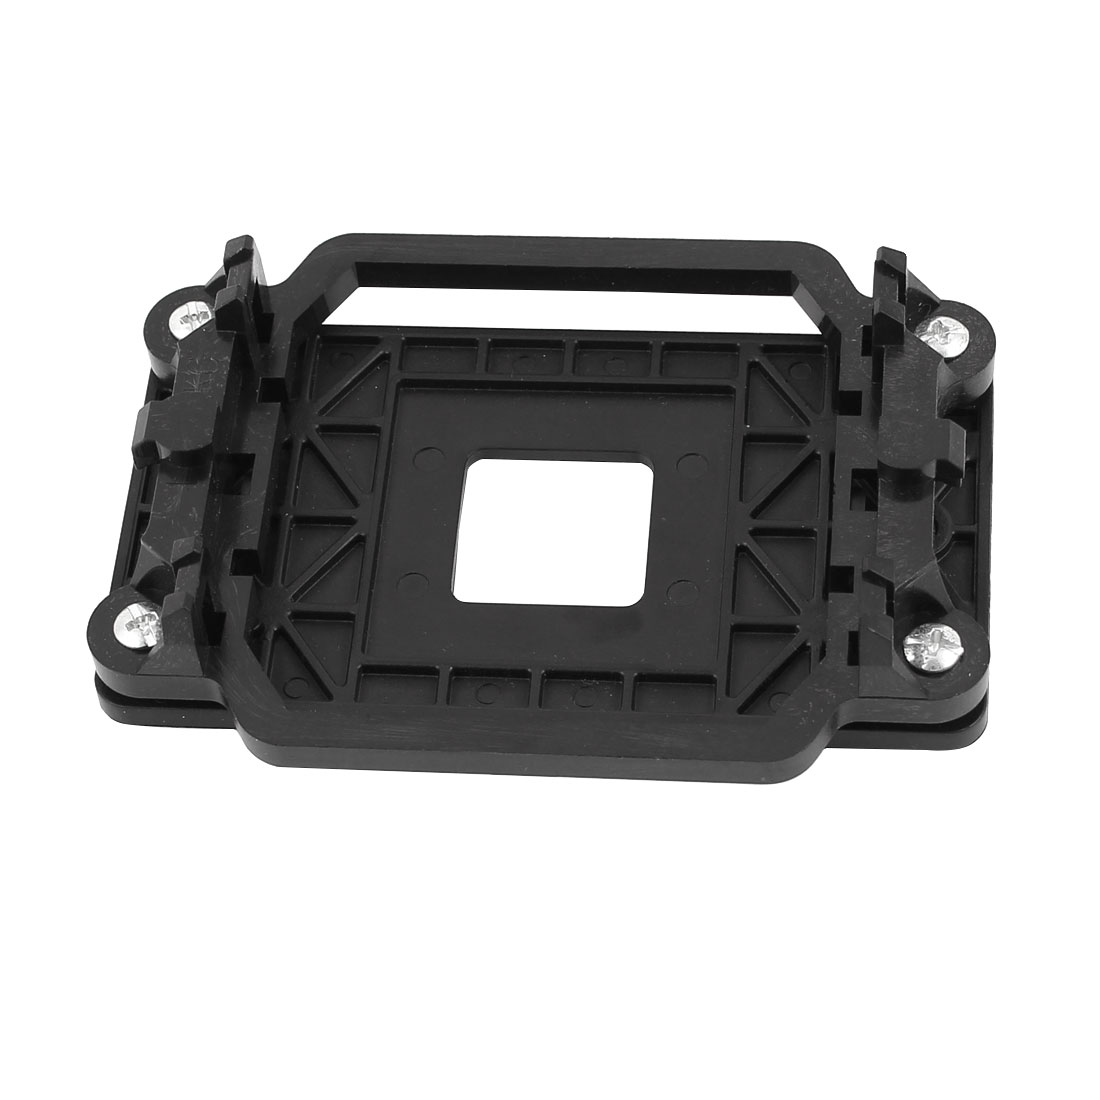 Unique Bargains AMD CPU Cooling Fan Mounting Bracket Base Black for K8 FM1 AM2 940 Socket Plate